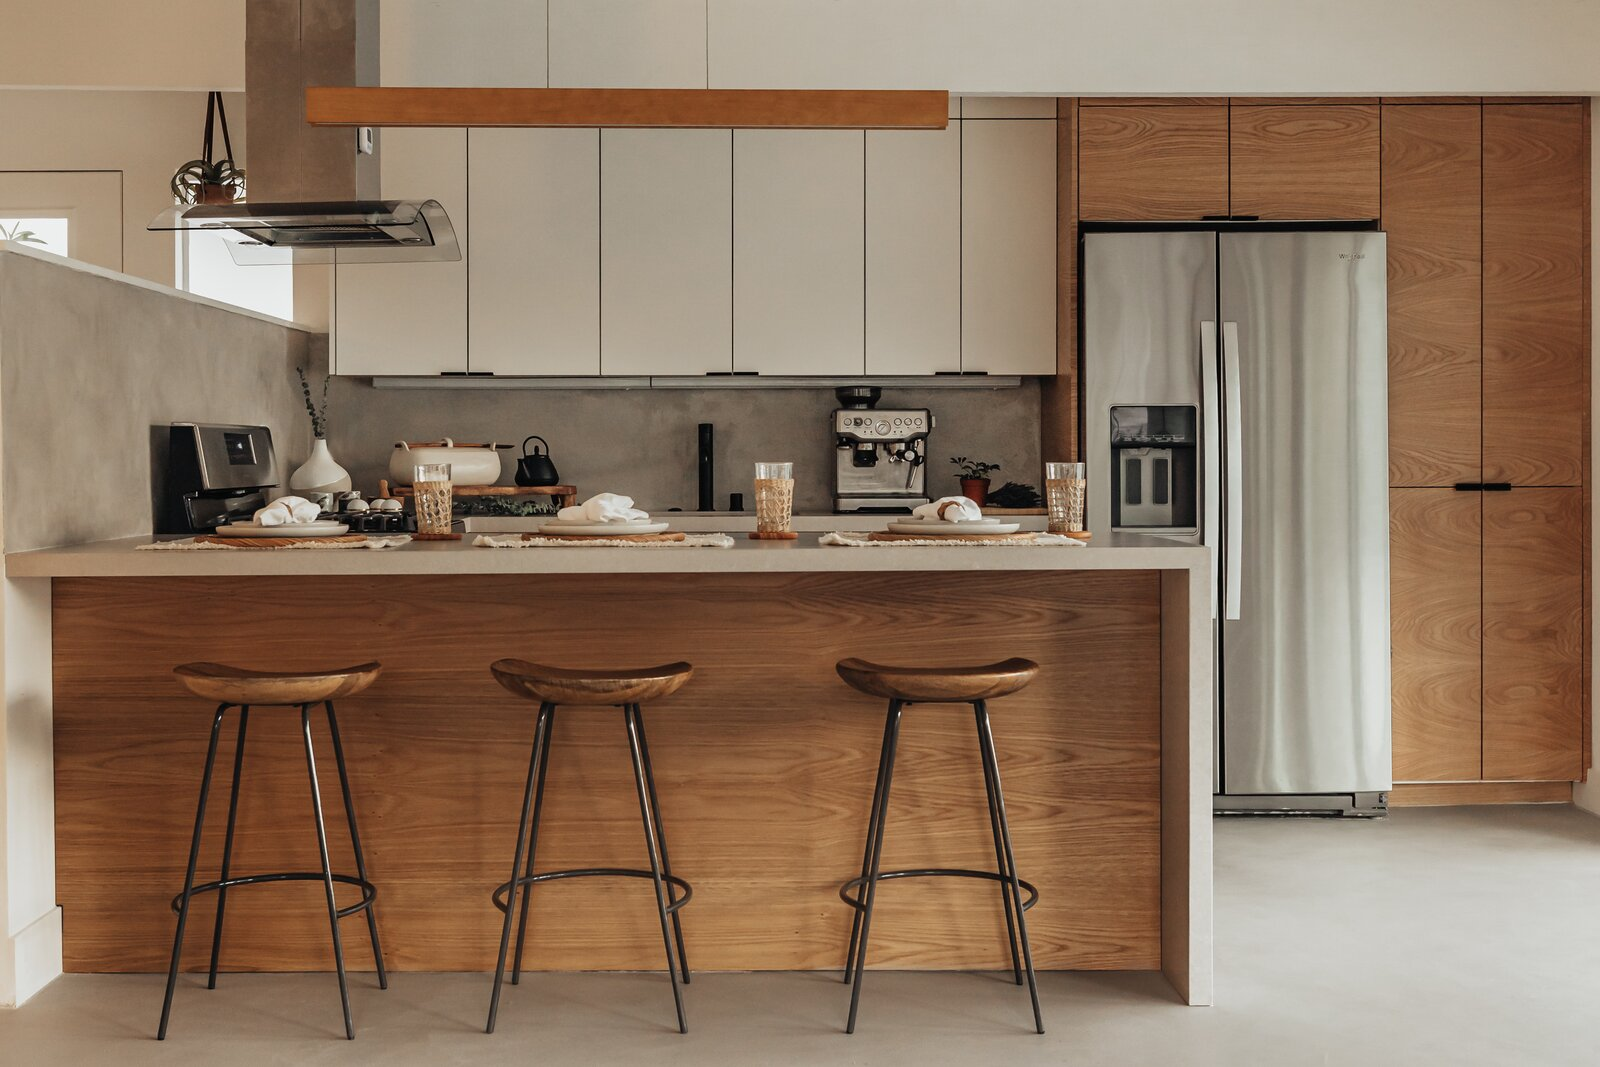 Kitchen in Alexander Home by Lilly Kim